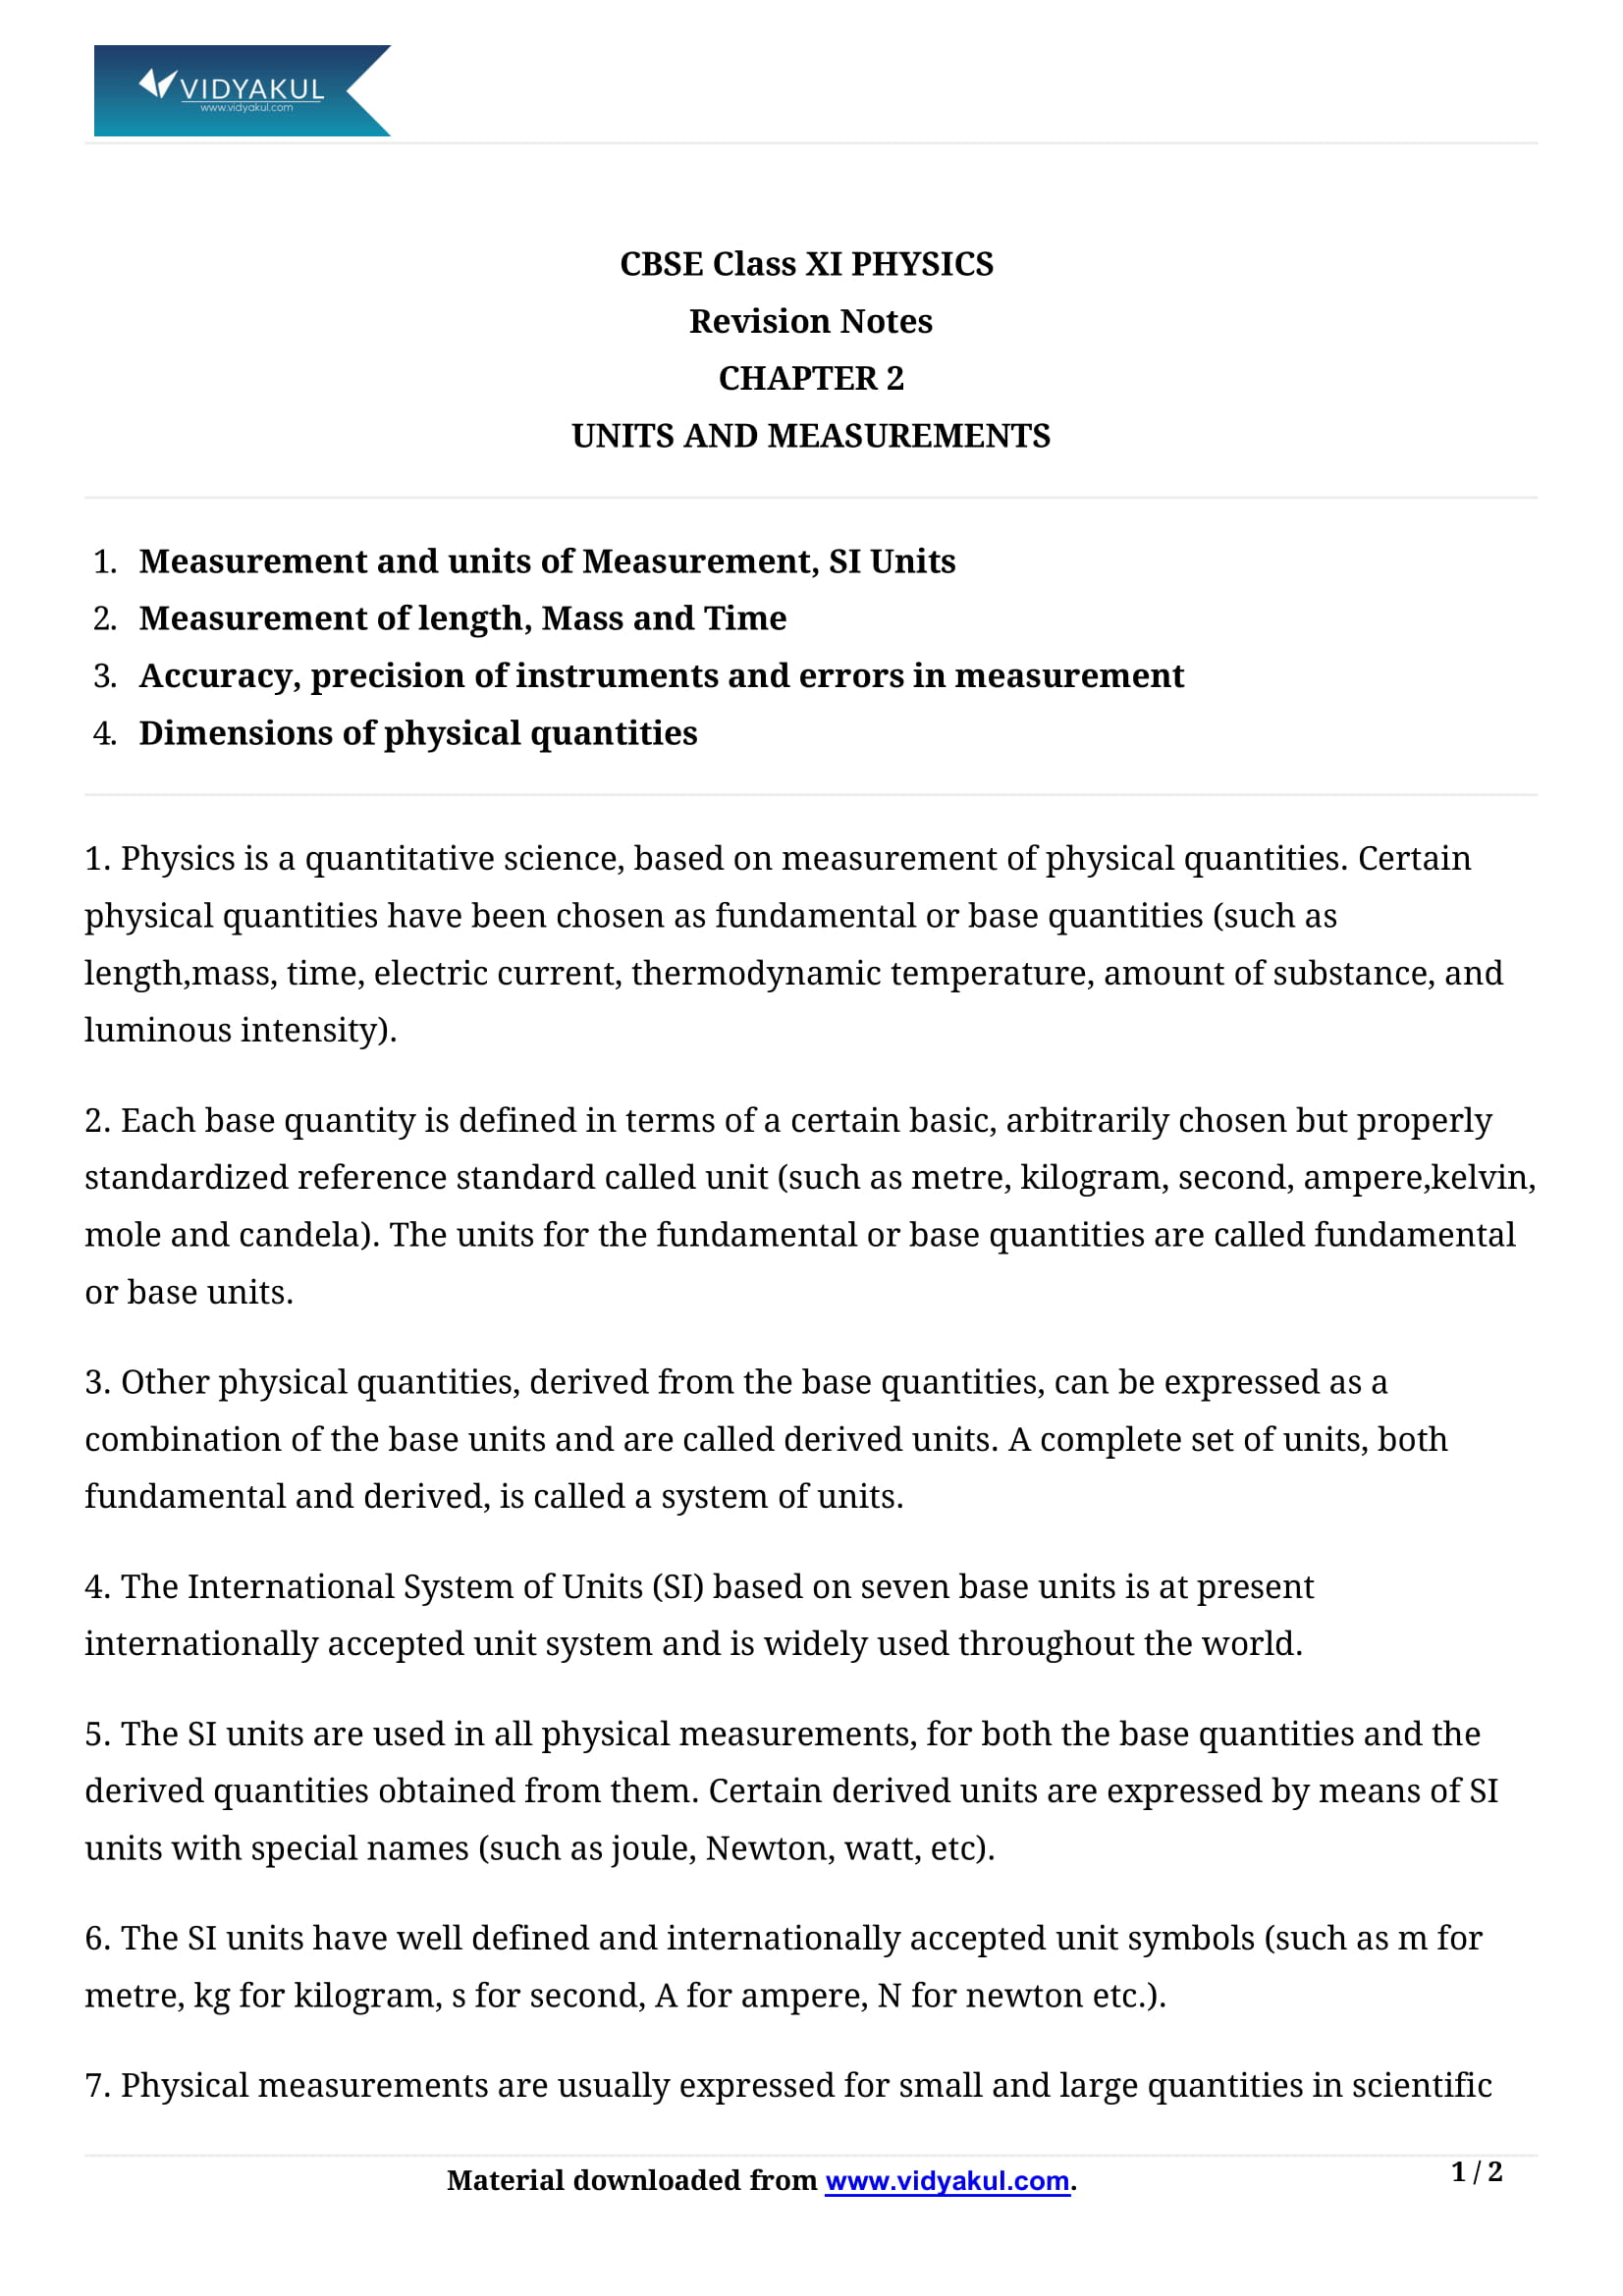 Class 11 Physics Chapter 2 Units and Measurement Notes | Vidyakul